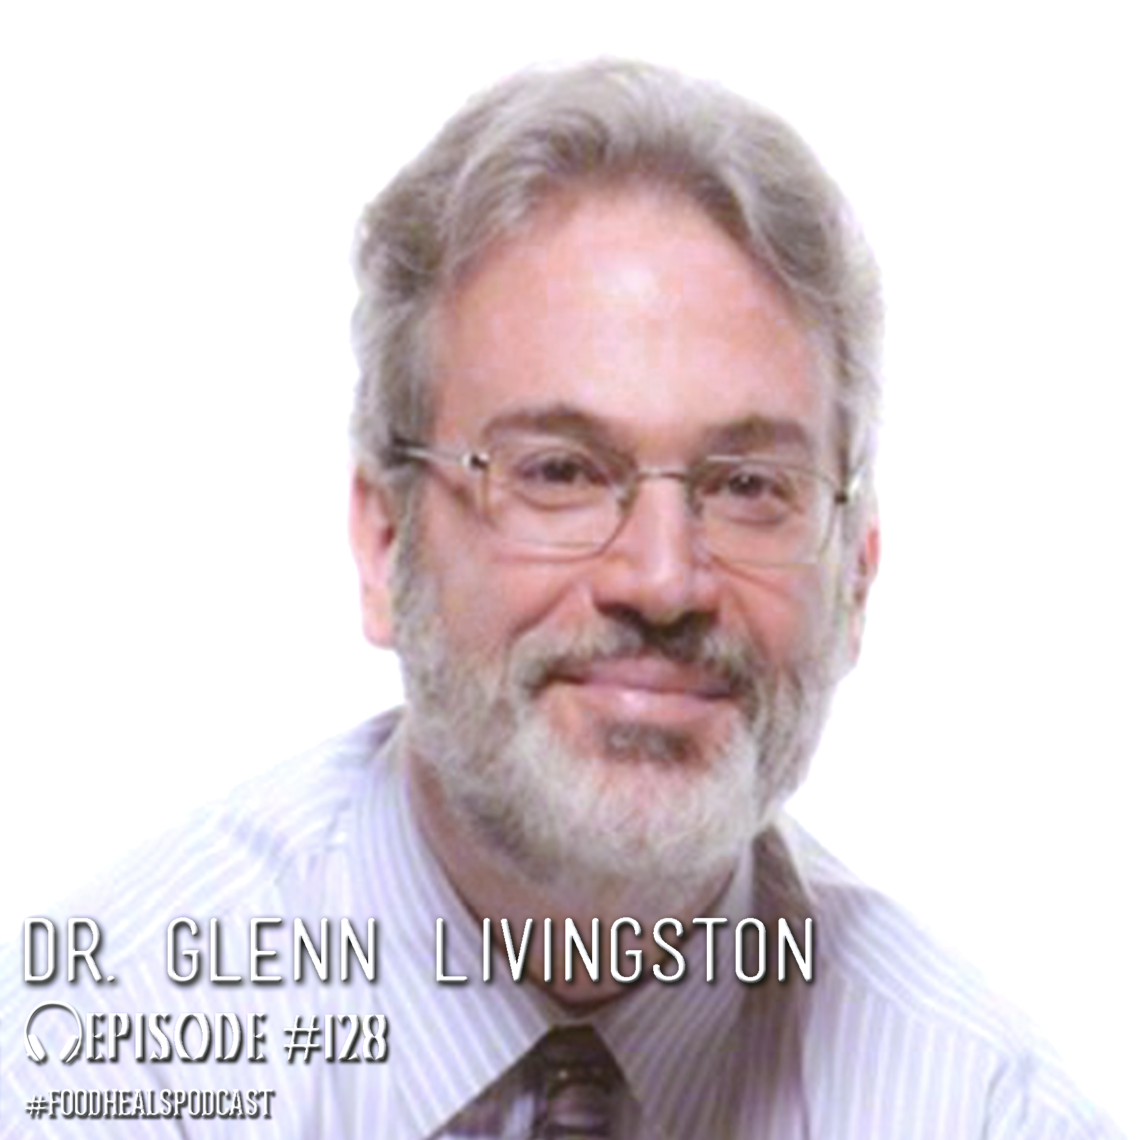 Dr. Glenn Livingston, author of Never Binge Again